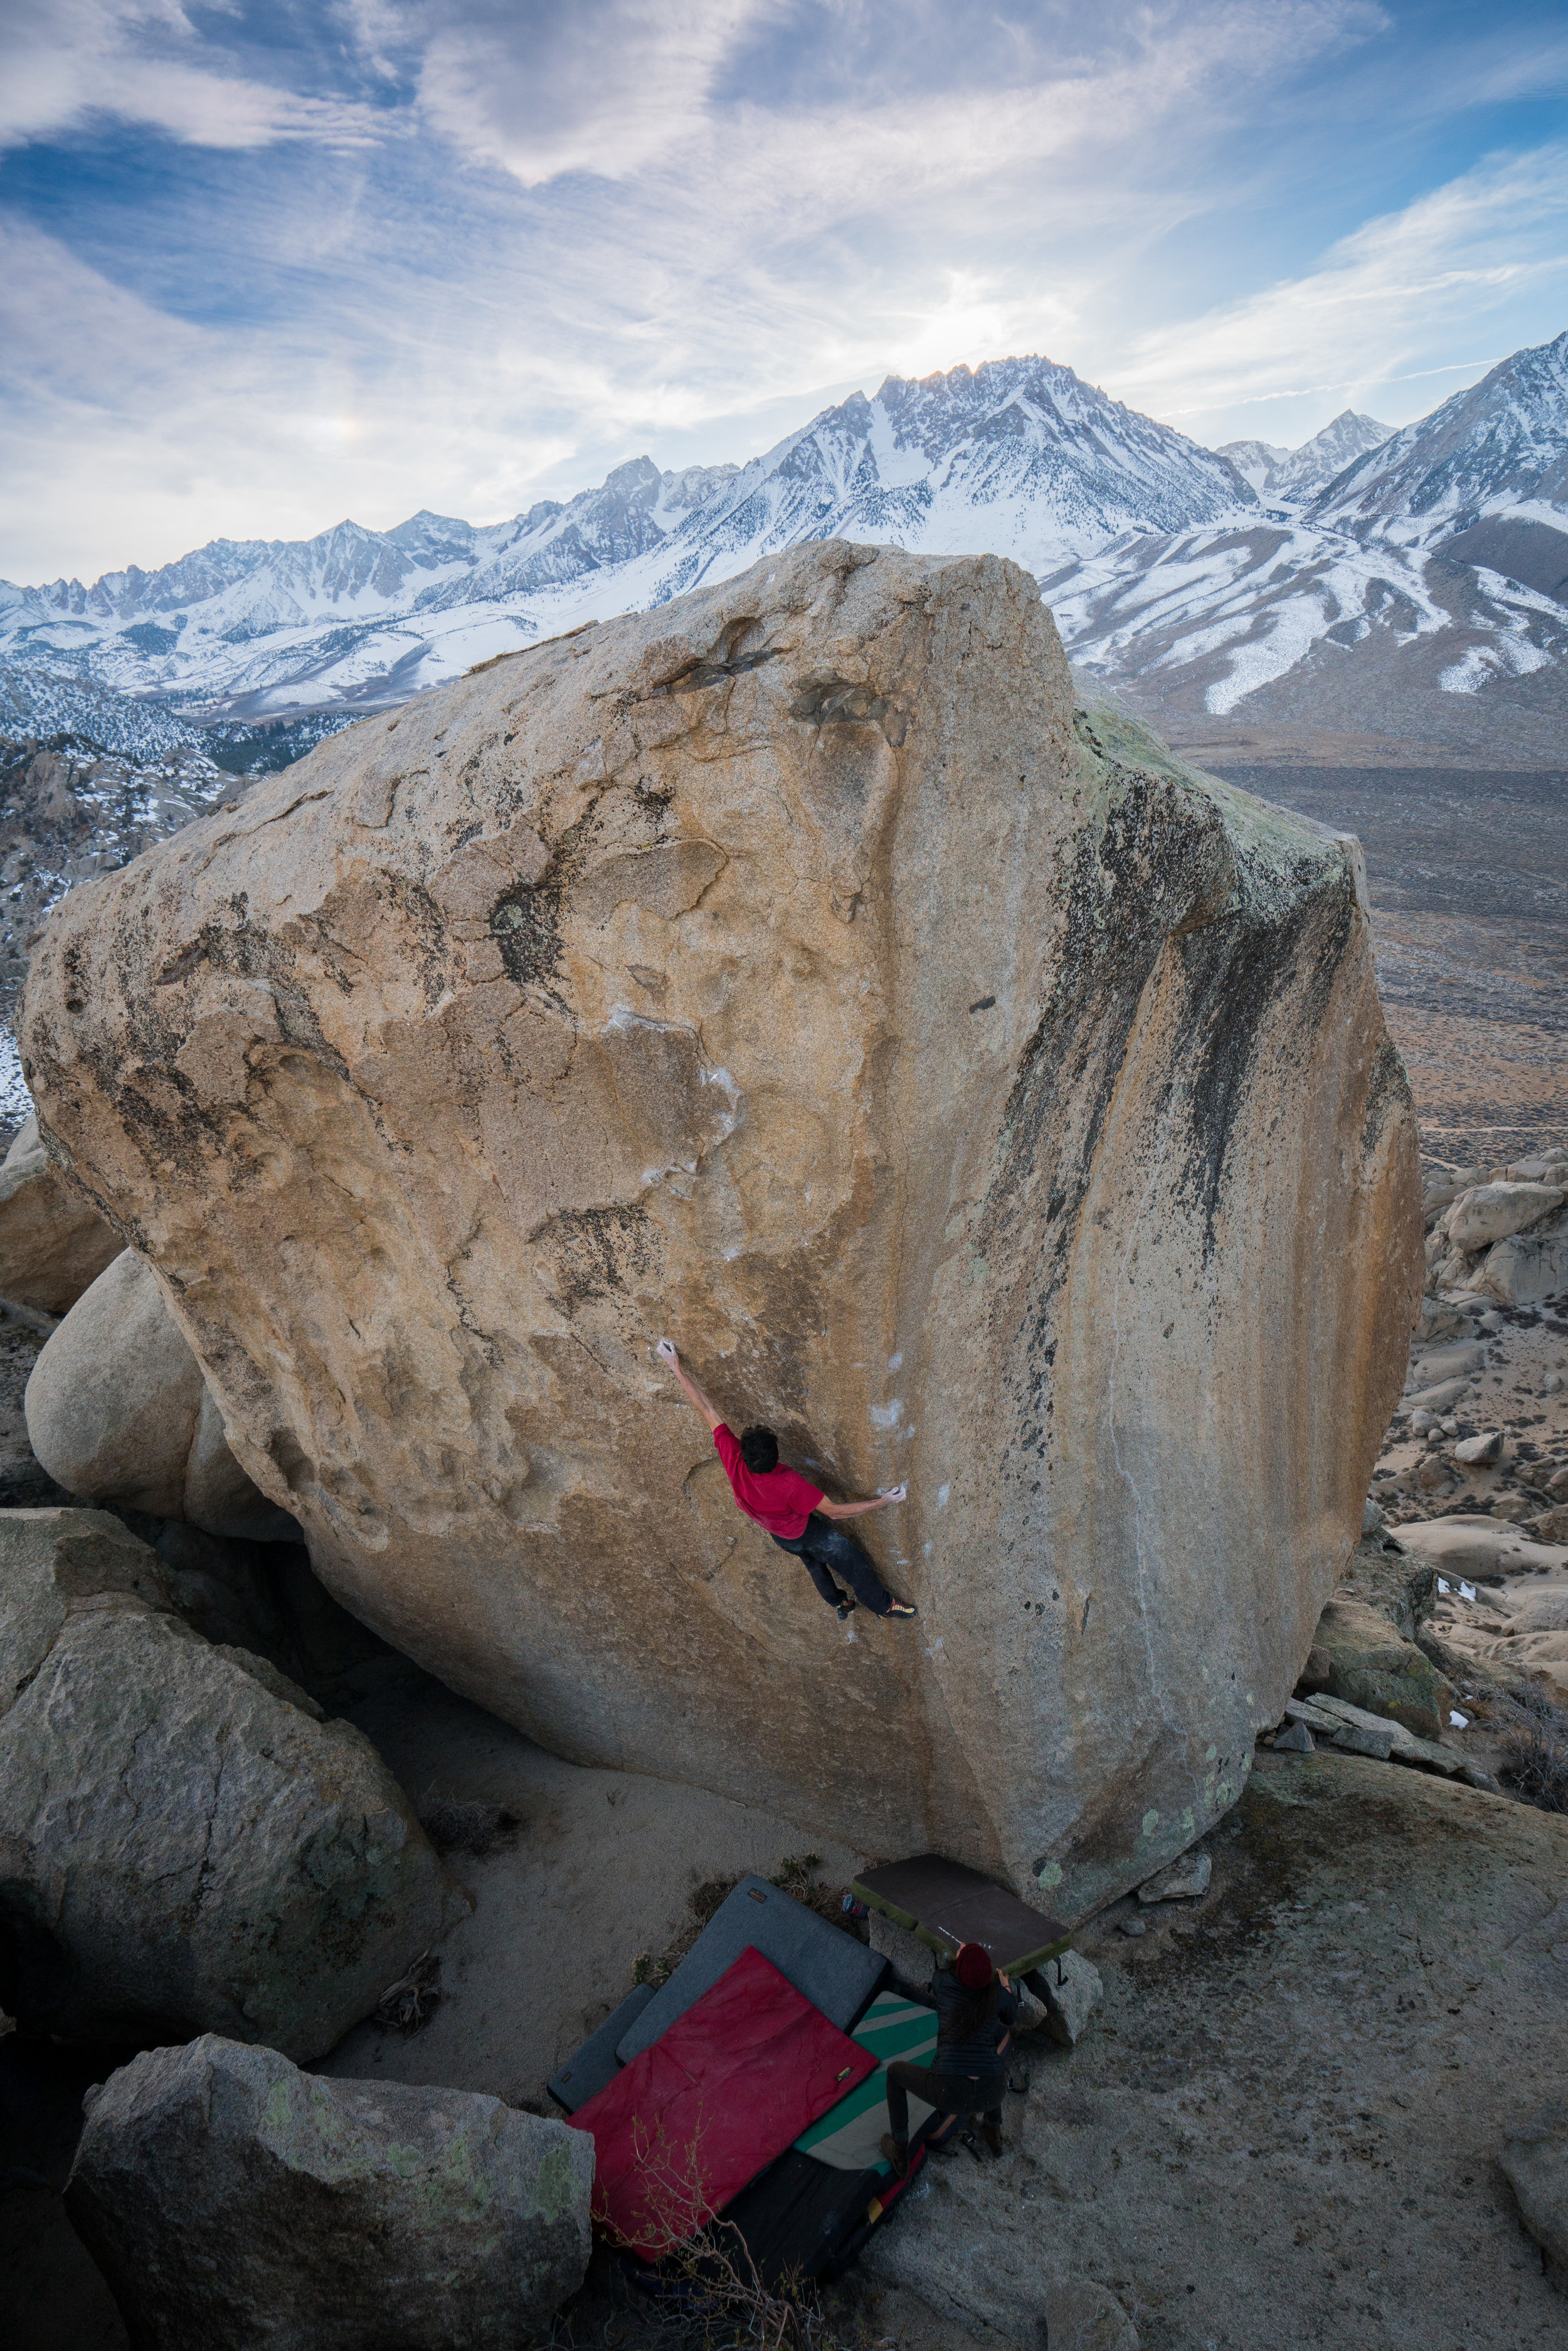 The dynamic left hand lunge of Terminus. Photo: Kevin Takashi Smith